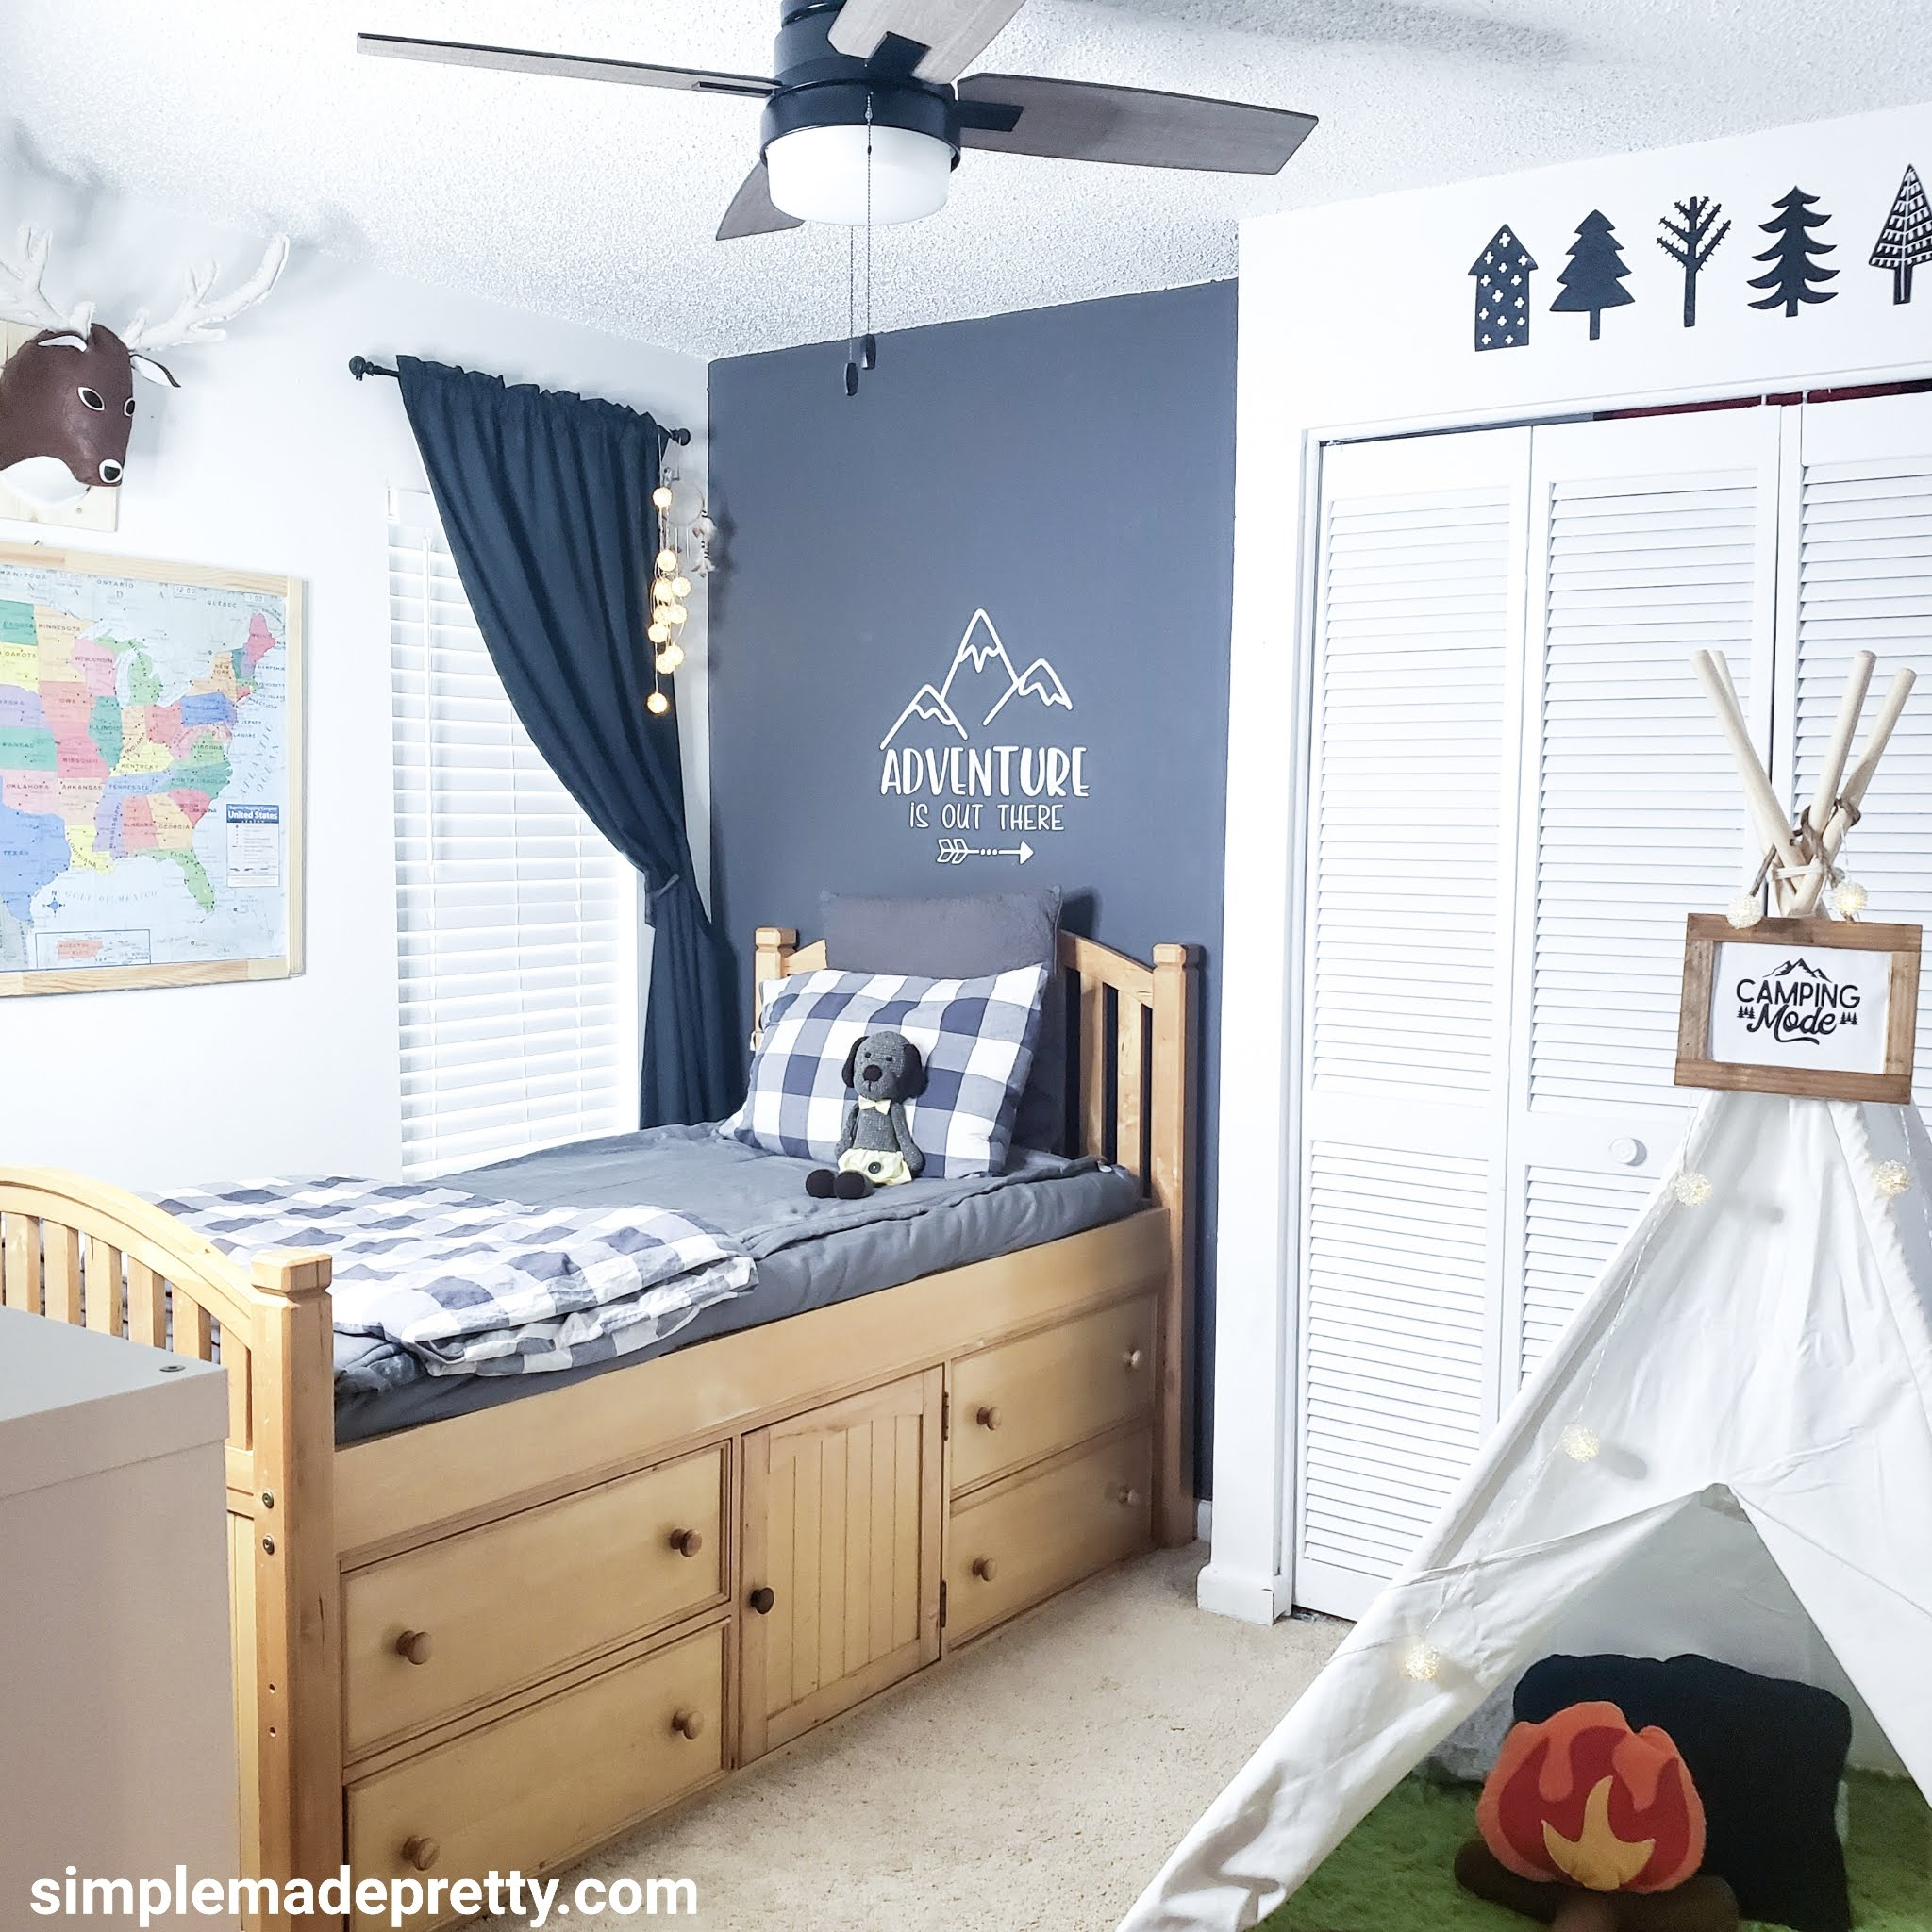 Boy's Bedroom Wilderness Theme